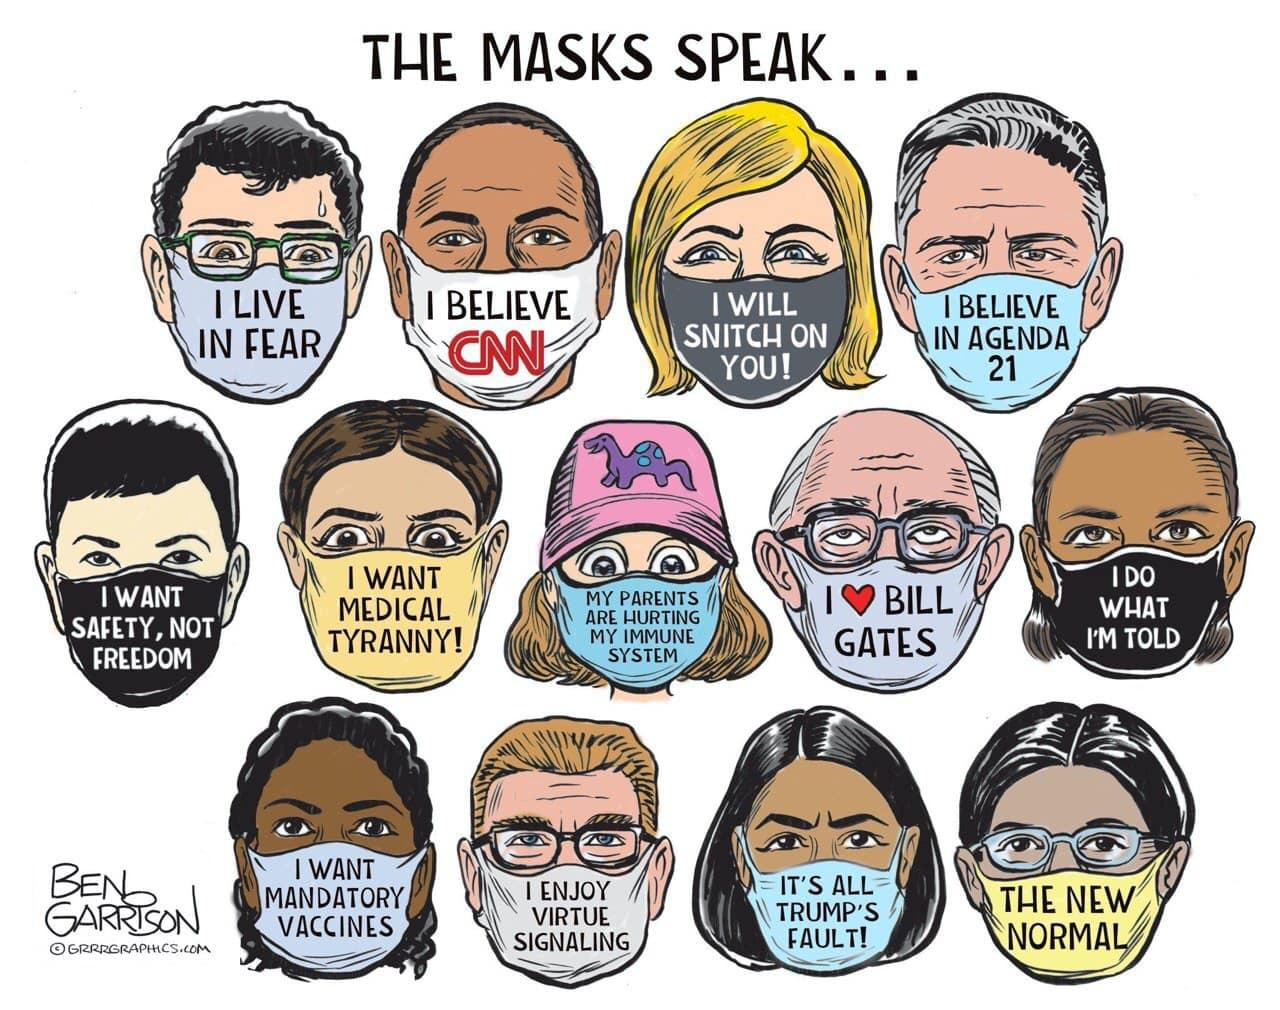 https://healthimpactnews.com/wp-content/uploads/sites/2/2020/06/Ben-Garrison-Masks-Cartoon.jpg